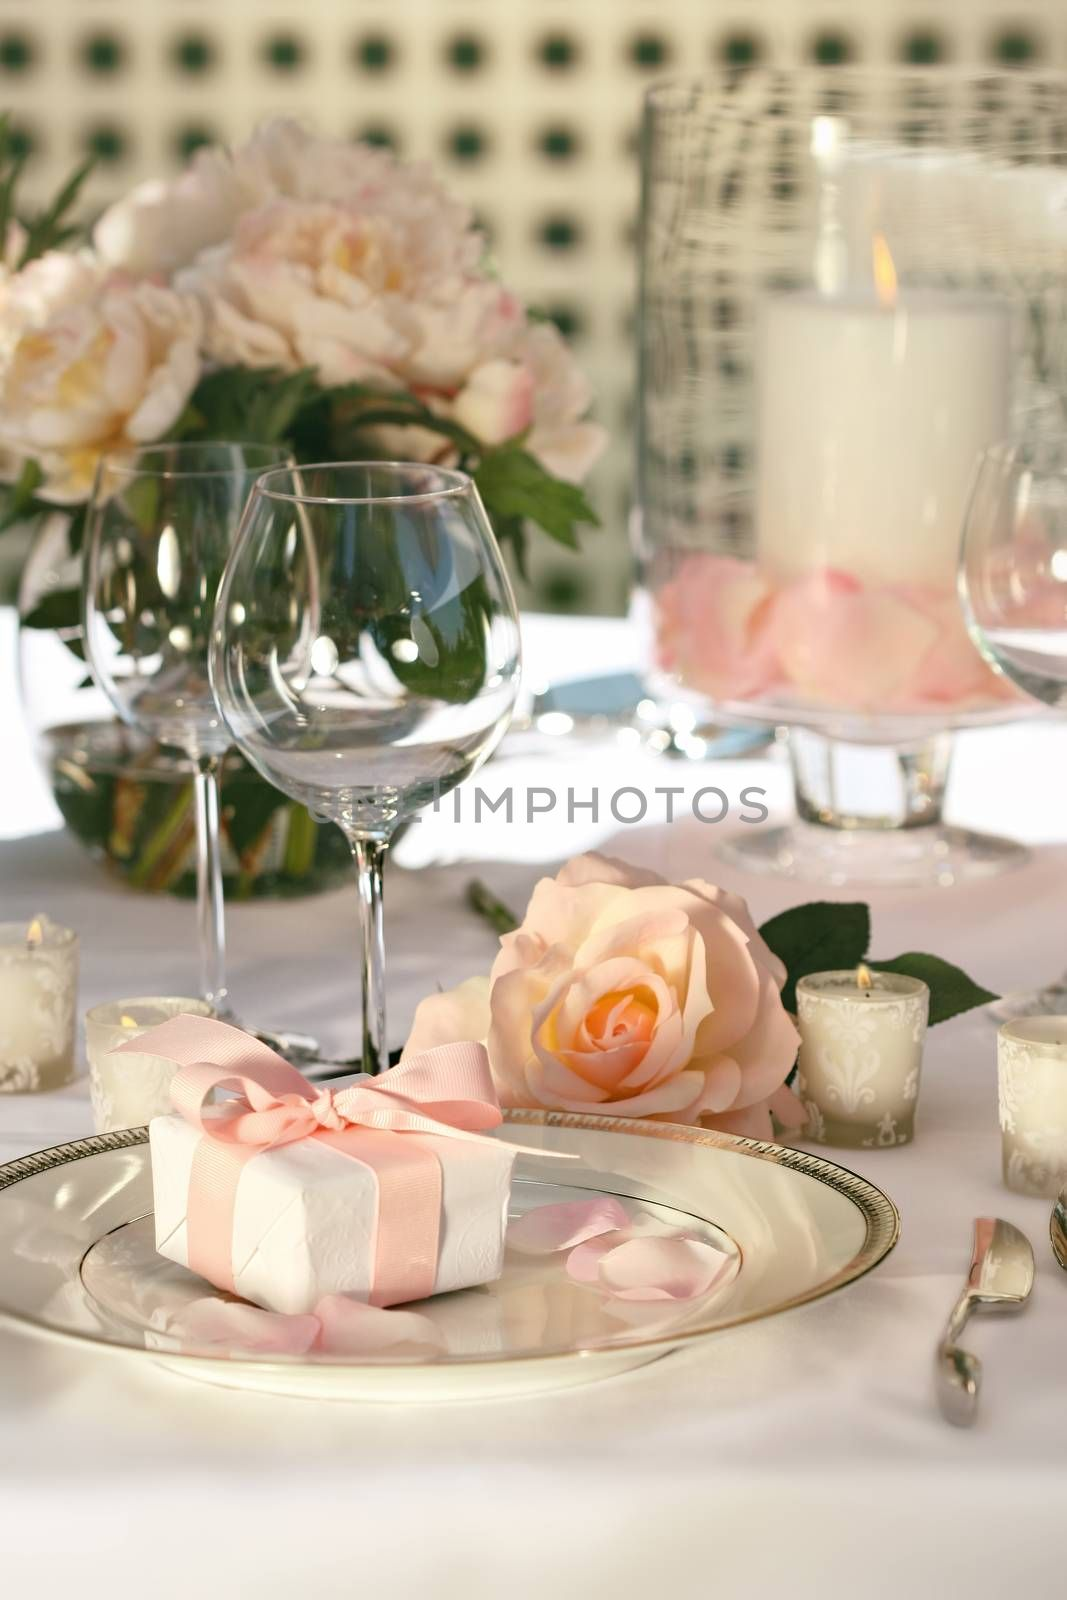 Small gift on plate at wedding reception